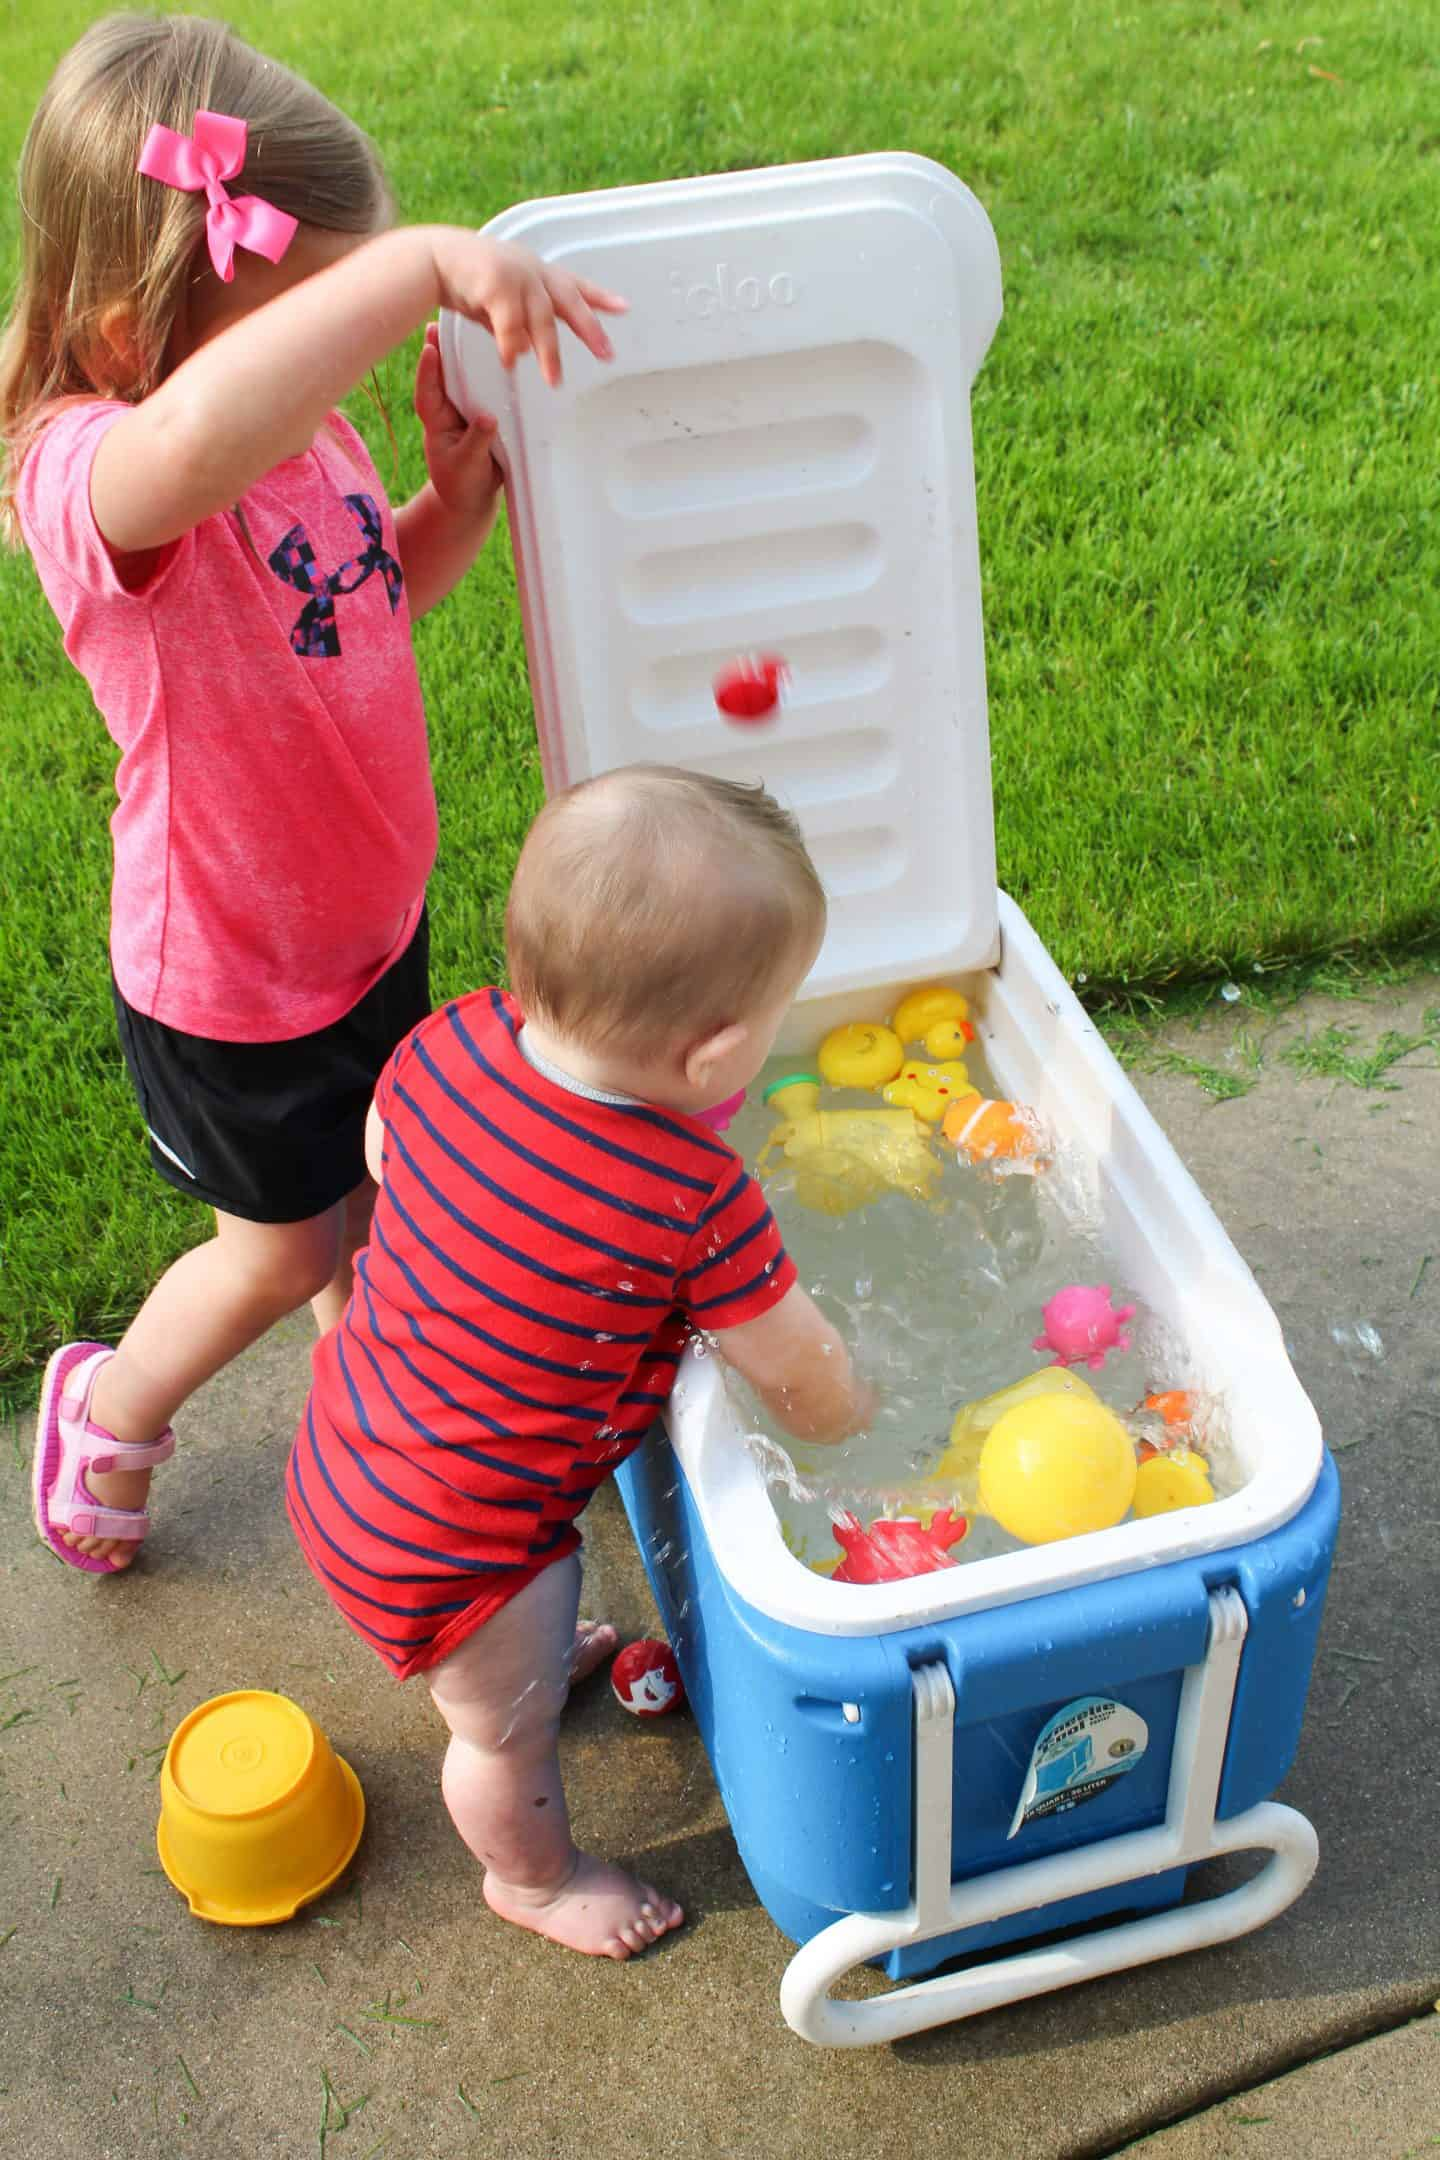 Turn a cooler into a fun water center for your preschool aged child. Add water and allow them to play with the water table for tons of summer fun #watertable #preschoolideas #preschoolactivities